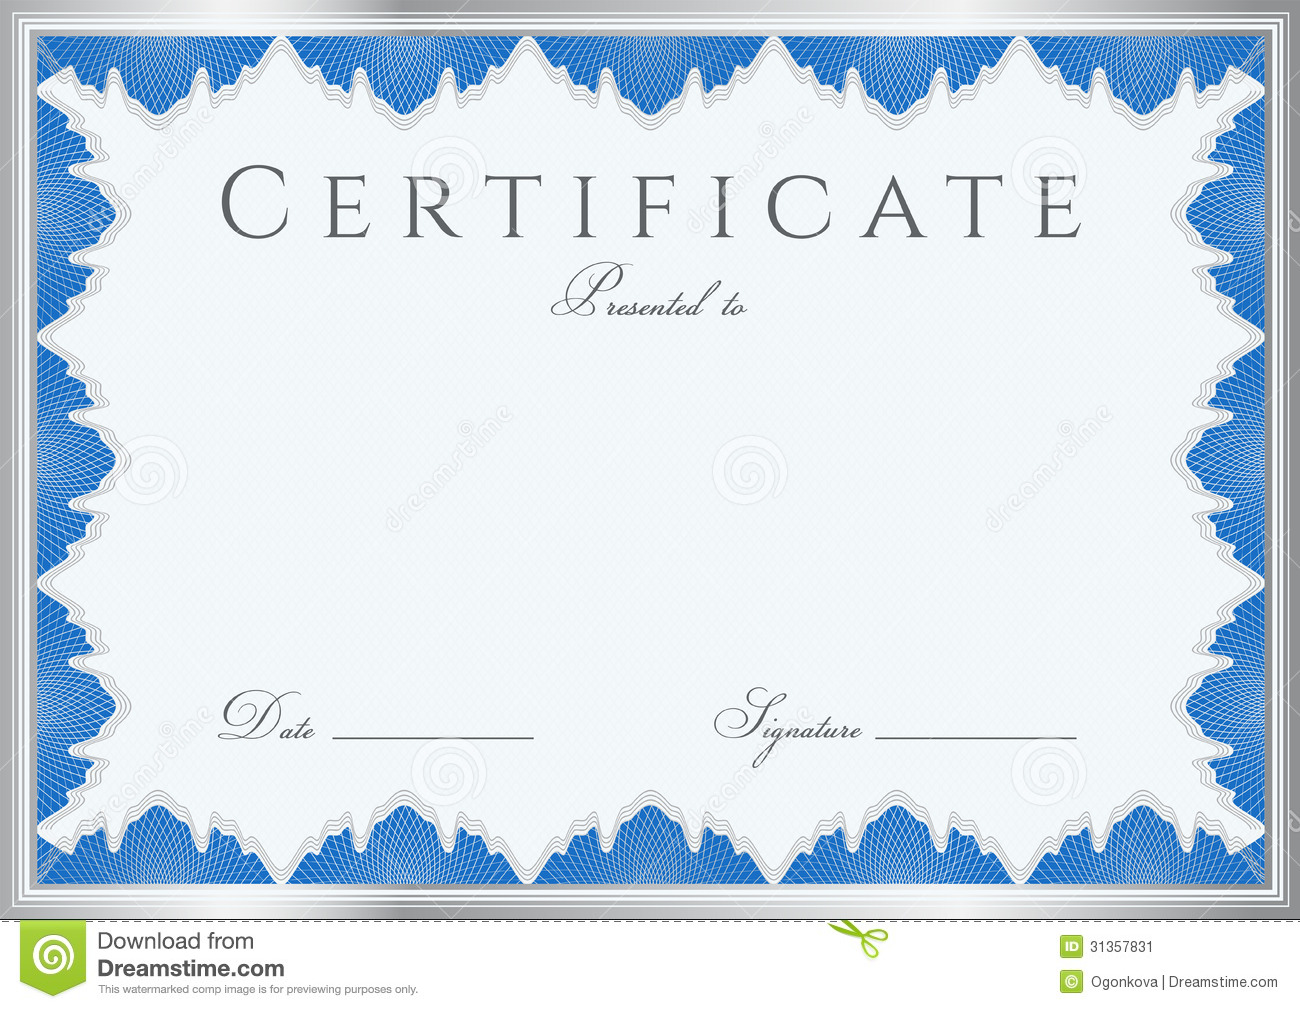 Download free certificate templates make gift vouchers online free certificate of completion free template professional invitation certificate diploma background template frame blue completion sample guilloche yelopaper Gallery